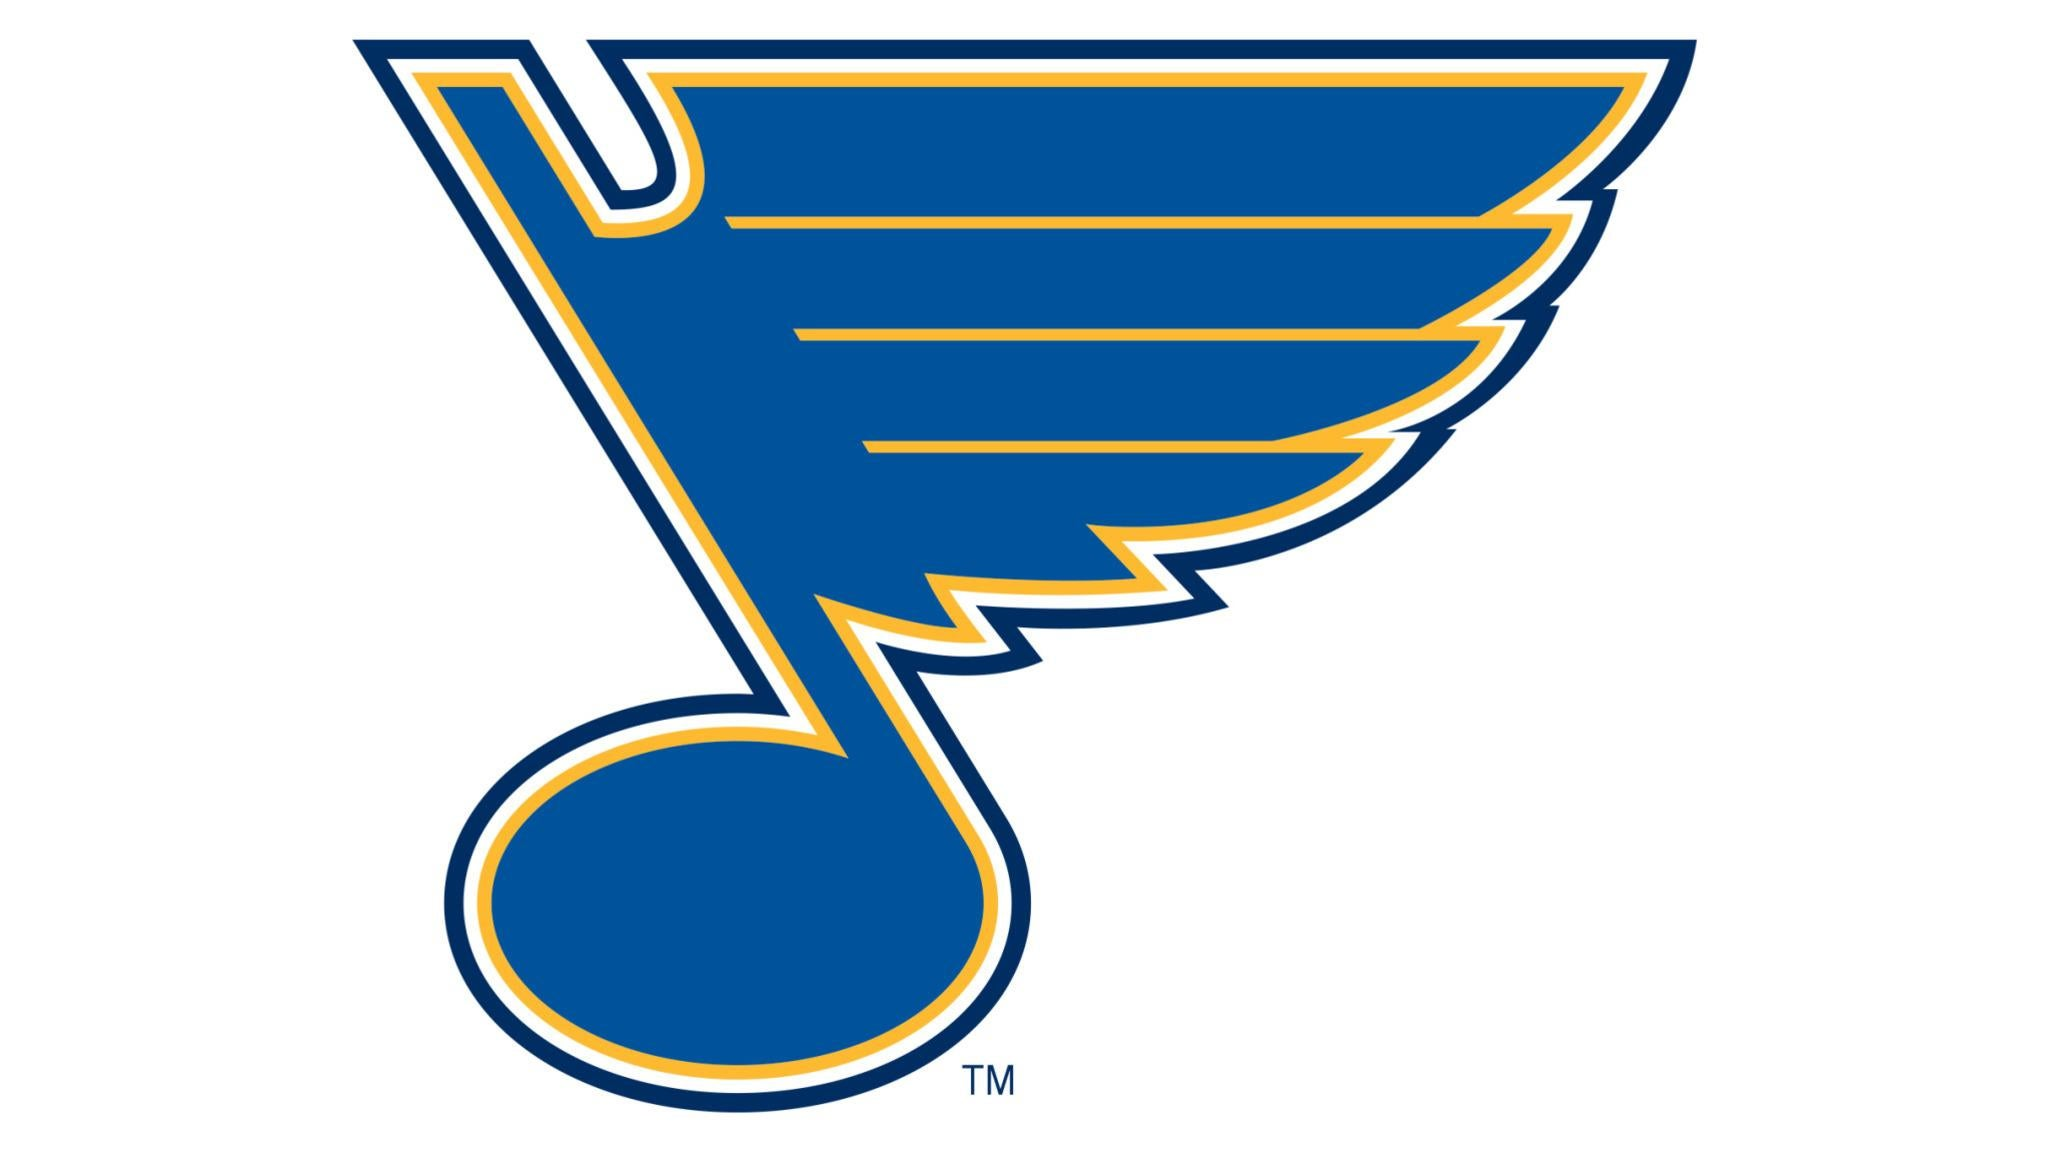 St. Louis Blues vs. Detroit Red Wings at Enterprise Center - St Louis, MO 63103